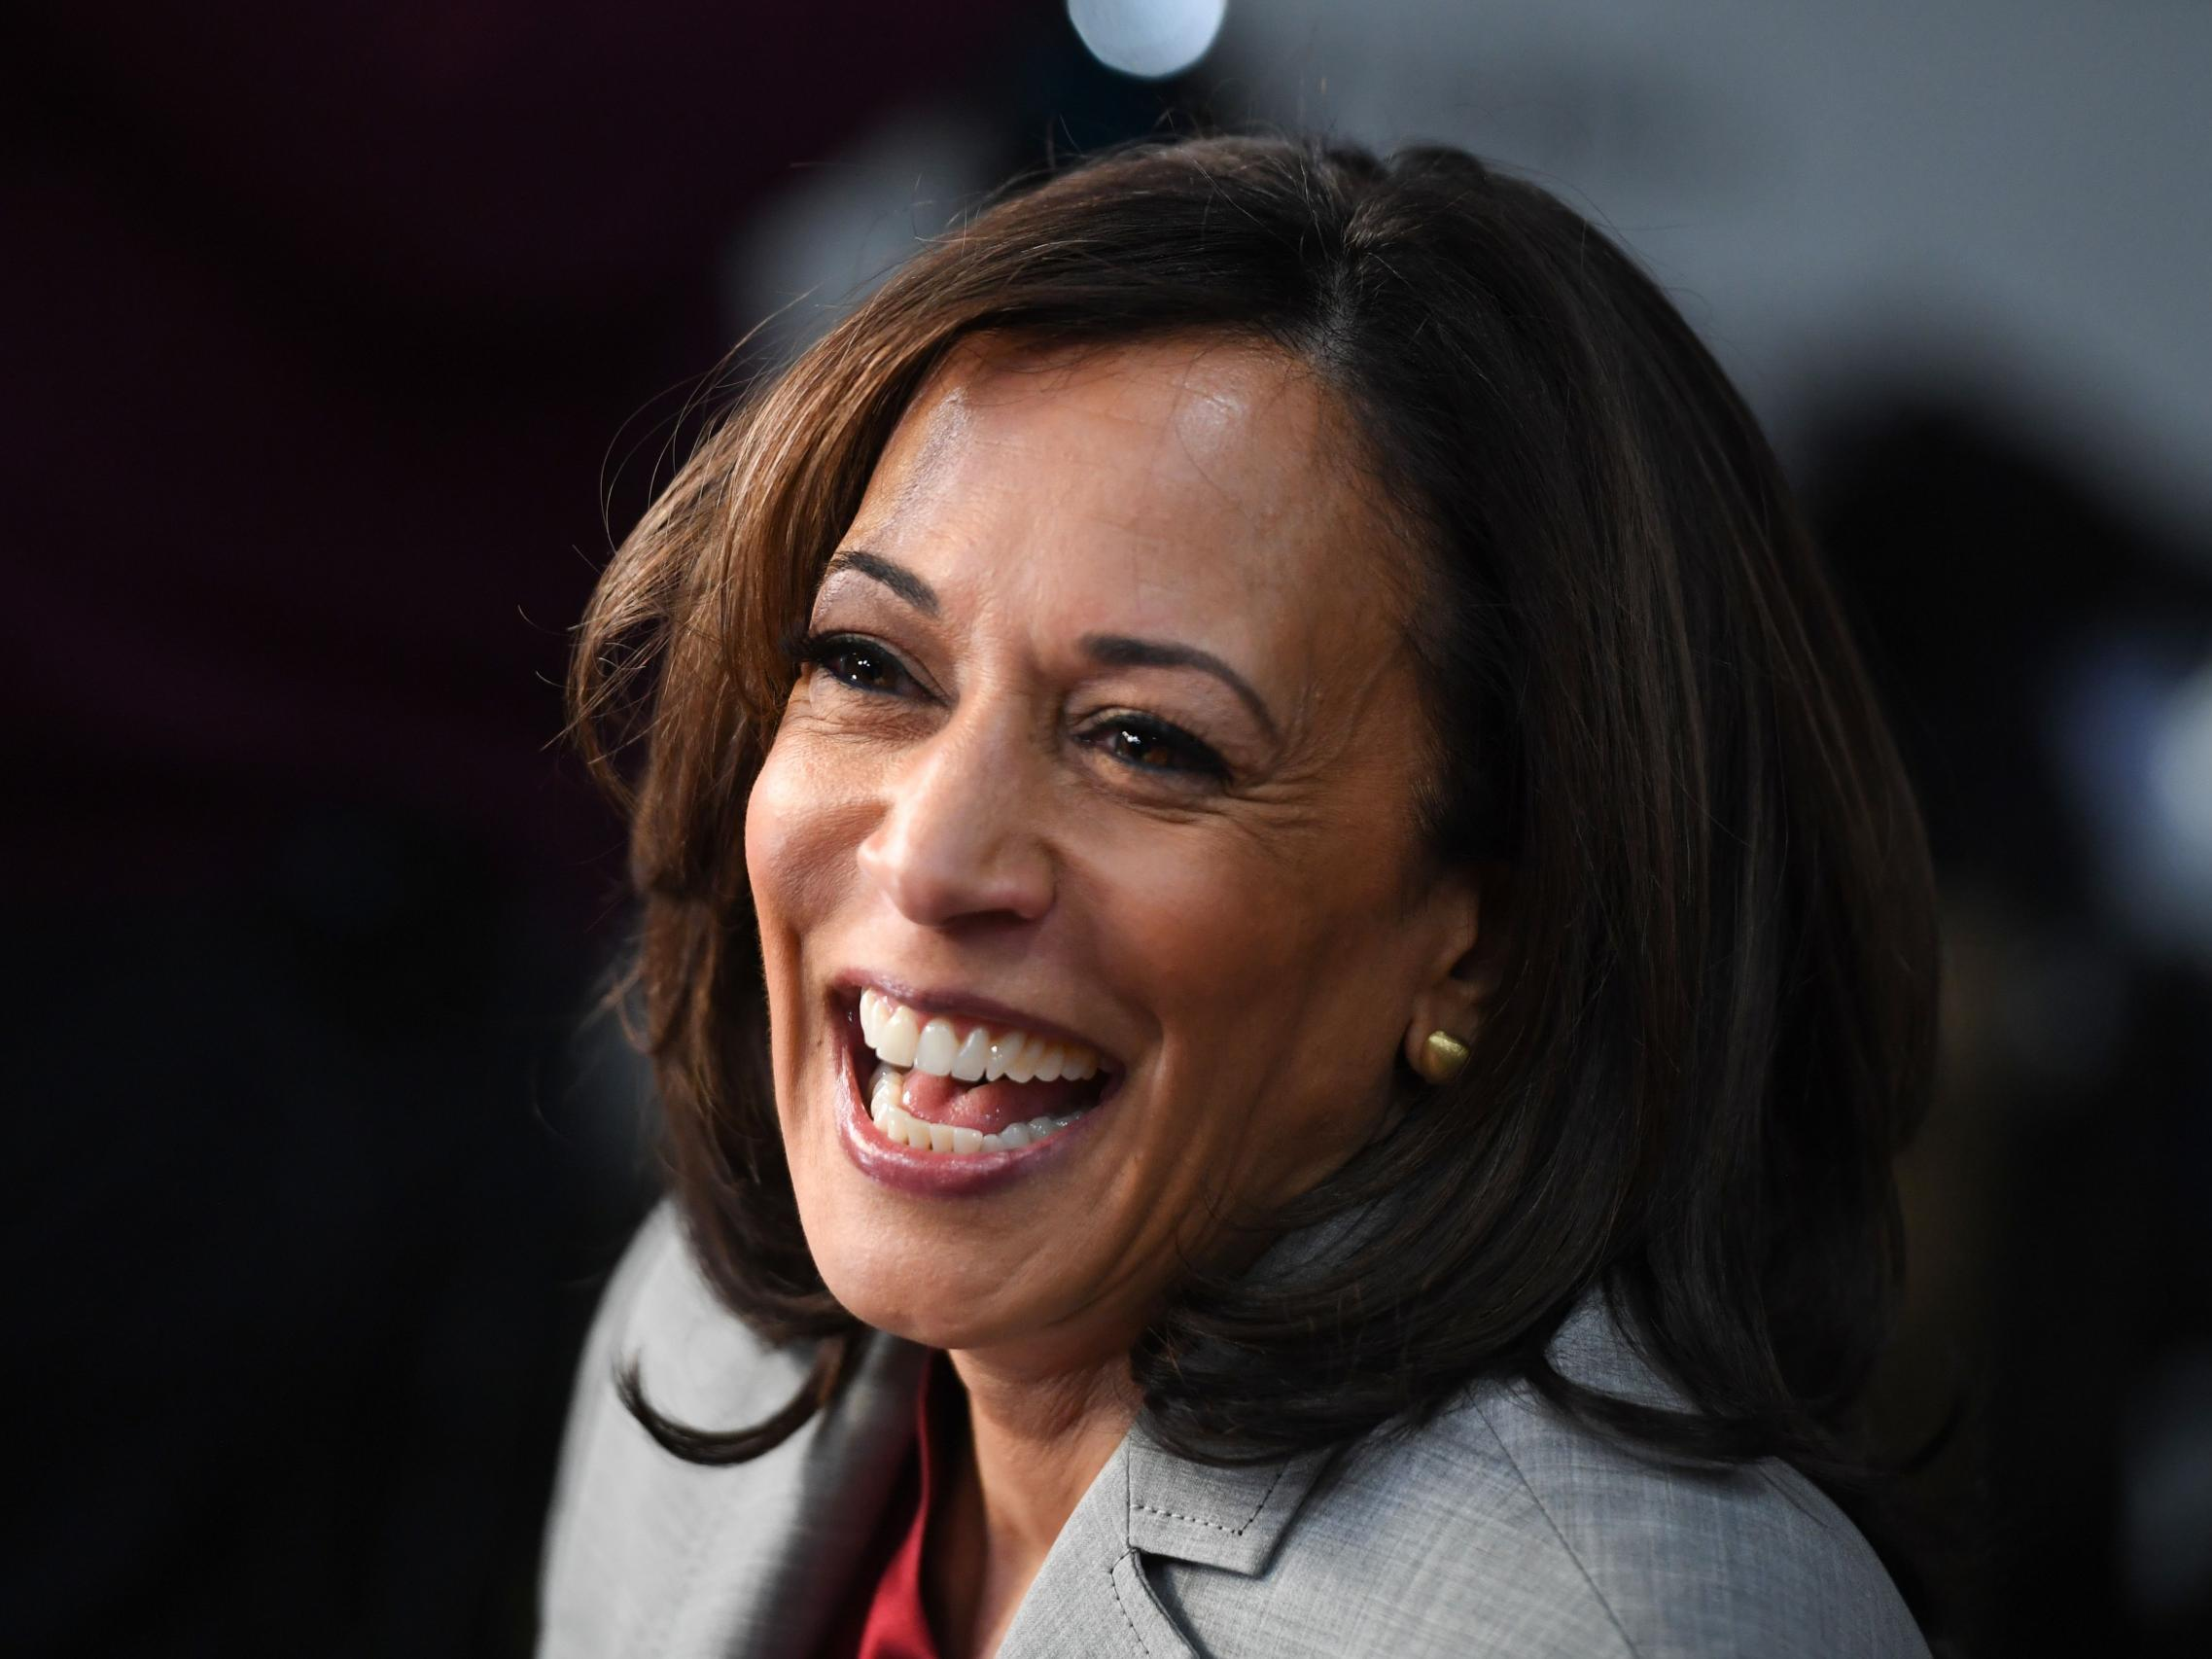 Kamala Harris Legislative Record Is About As Liberal As It Gets In The Senate The Independent The Independent